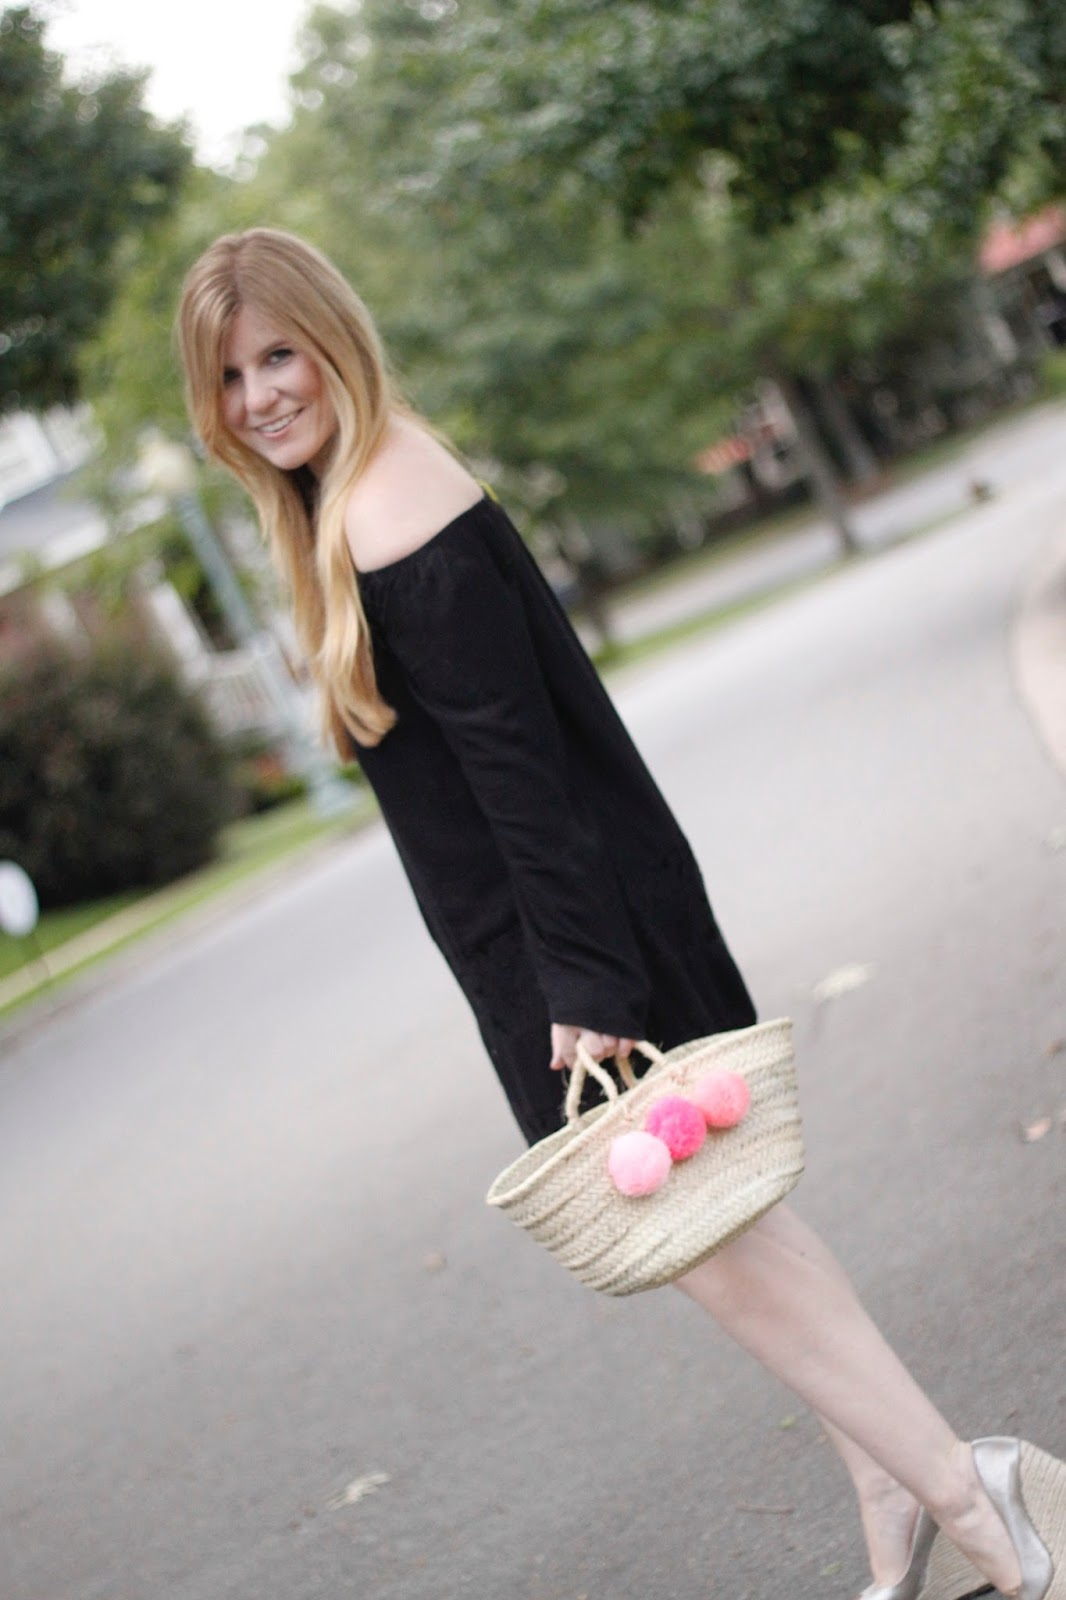 Off the Shoulder BCBGeneration dress with pom pom bag and Vince Camuto wedges